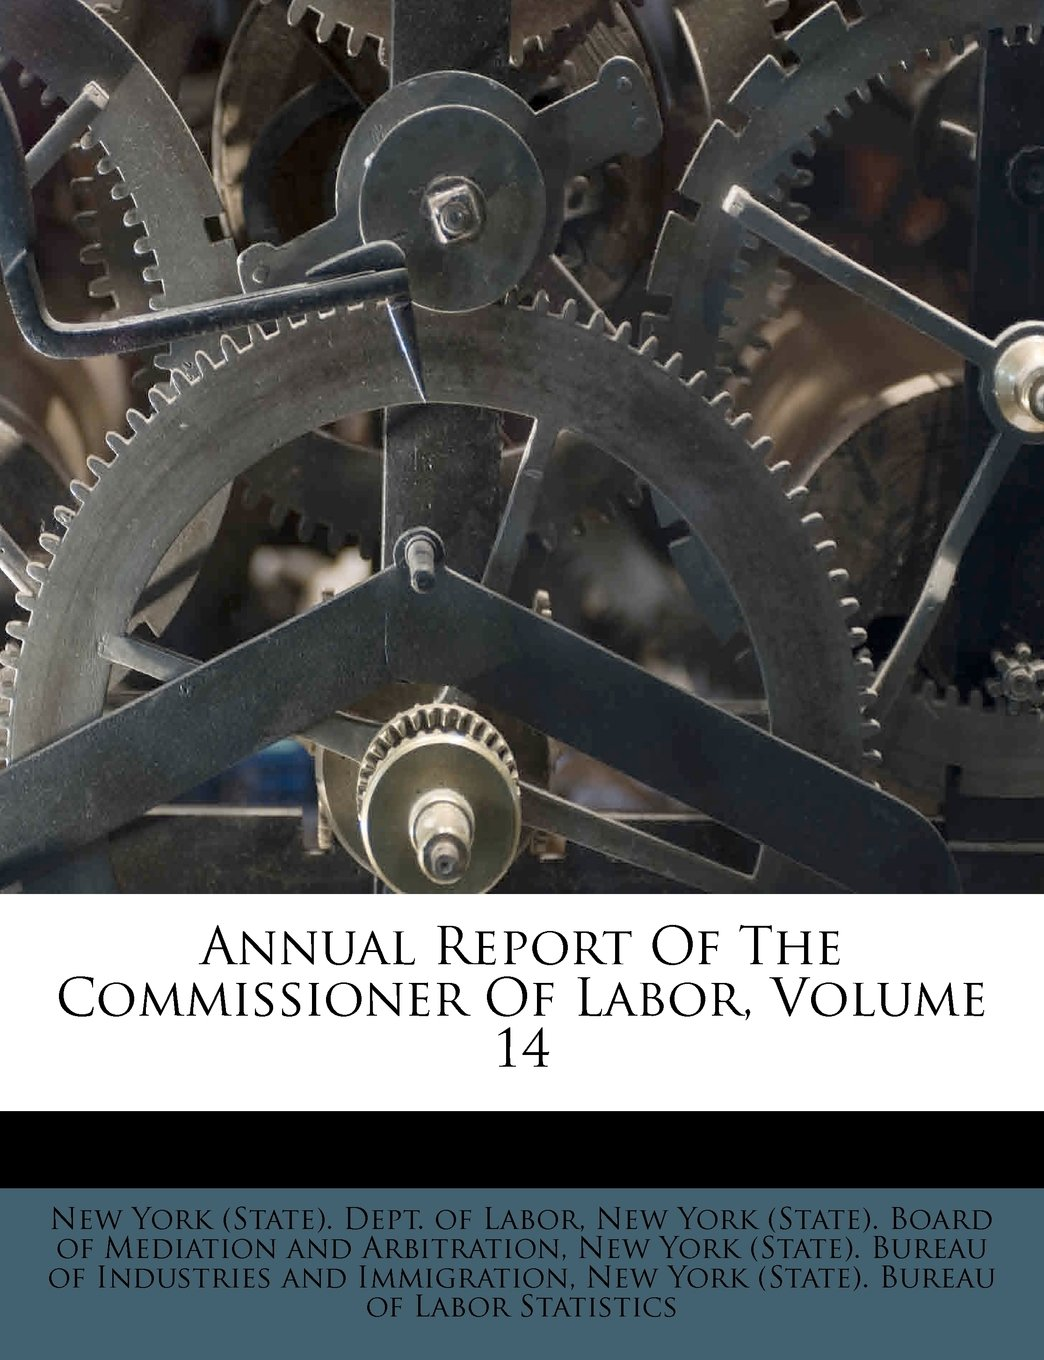 Download Annual Report Of The Commissioner Of Labor, Volume 14 (Afrikaans Edition) ebook